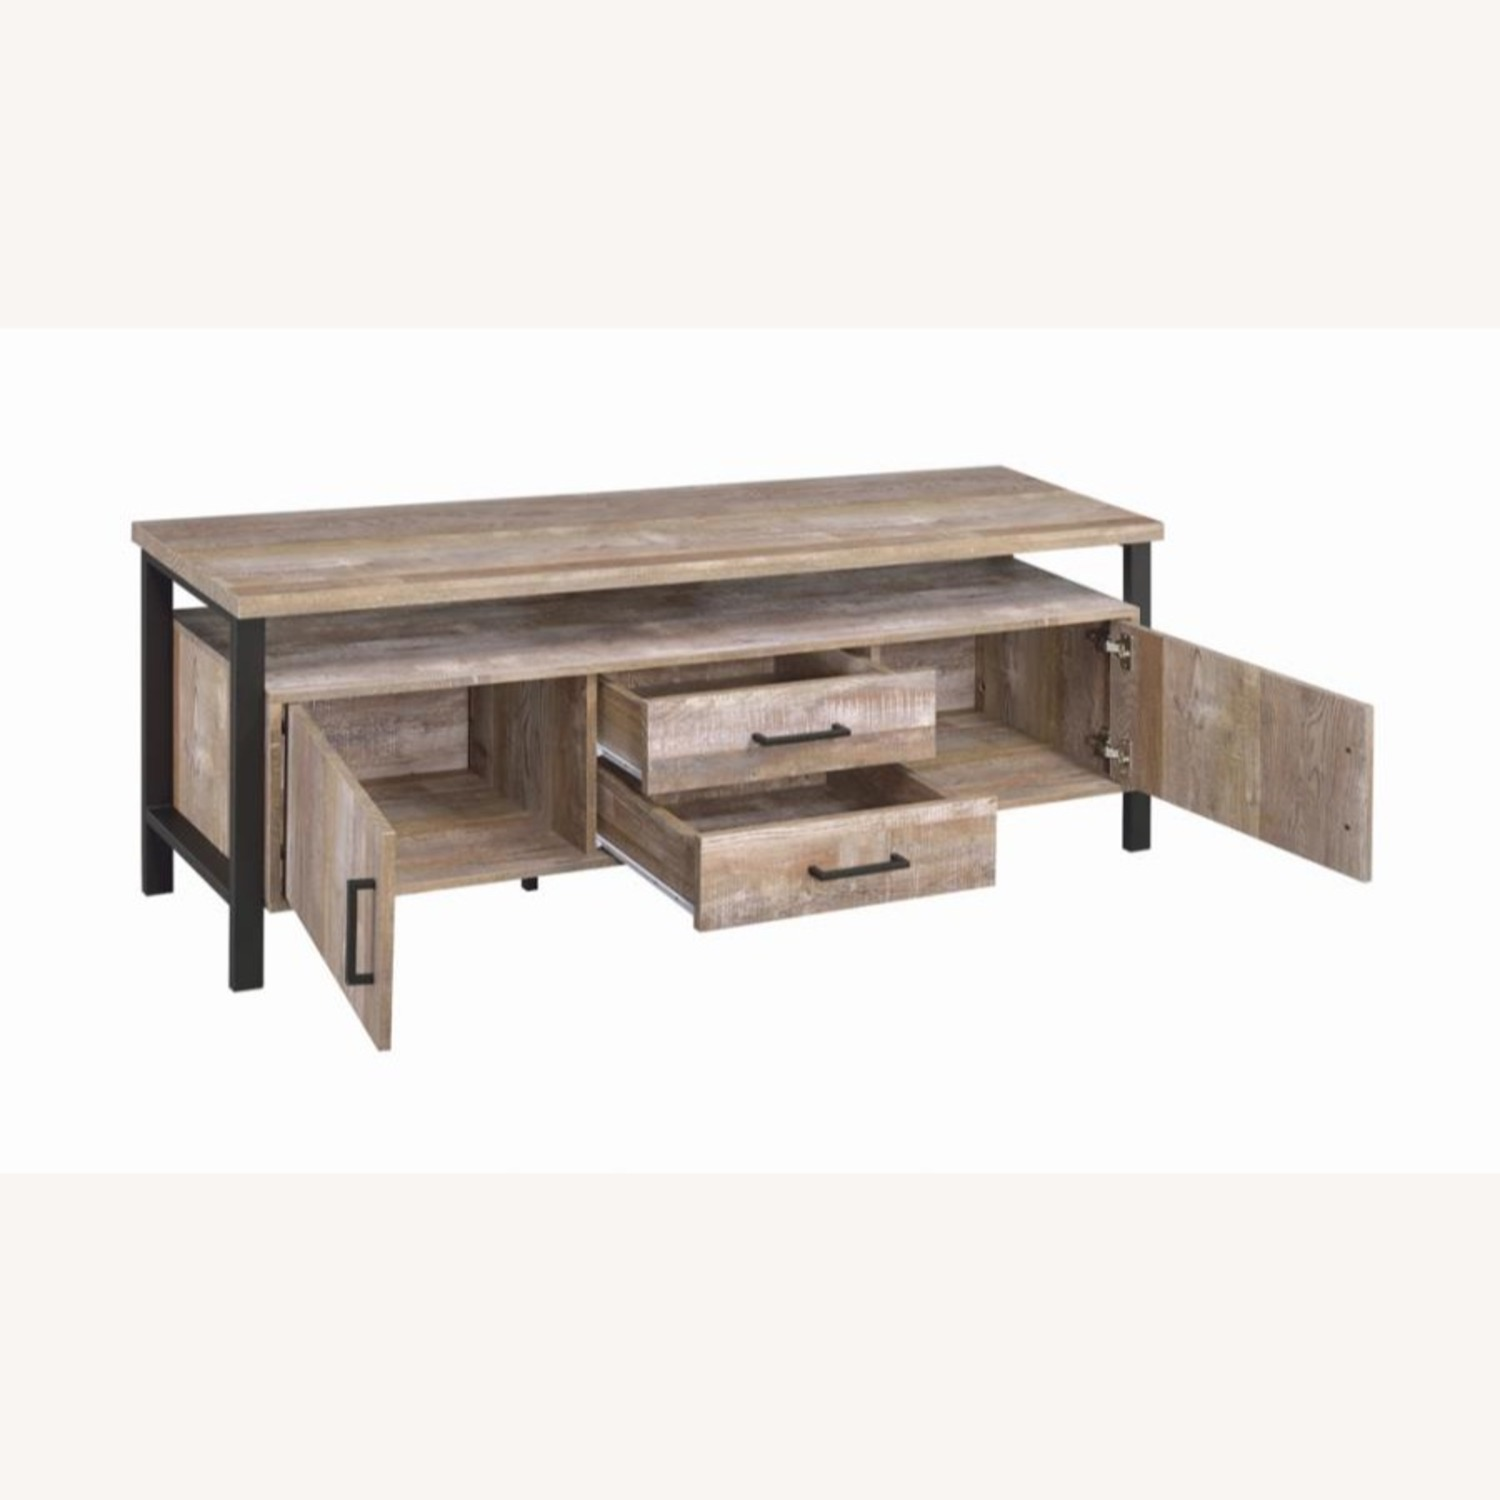 TV Console In Weathered Oak W/ Storage & Shelves - image-1